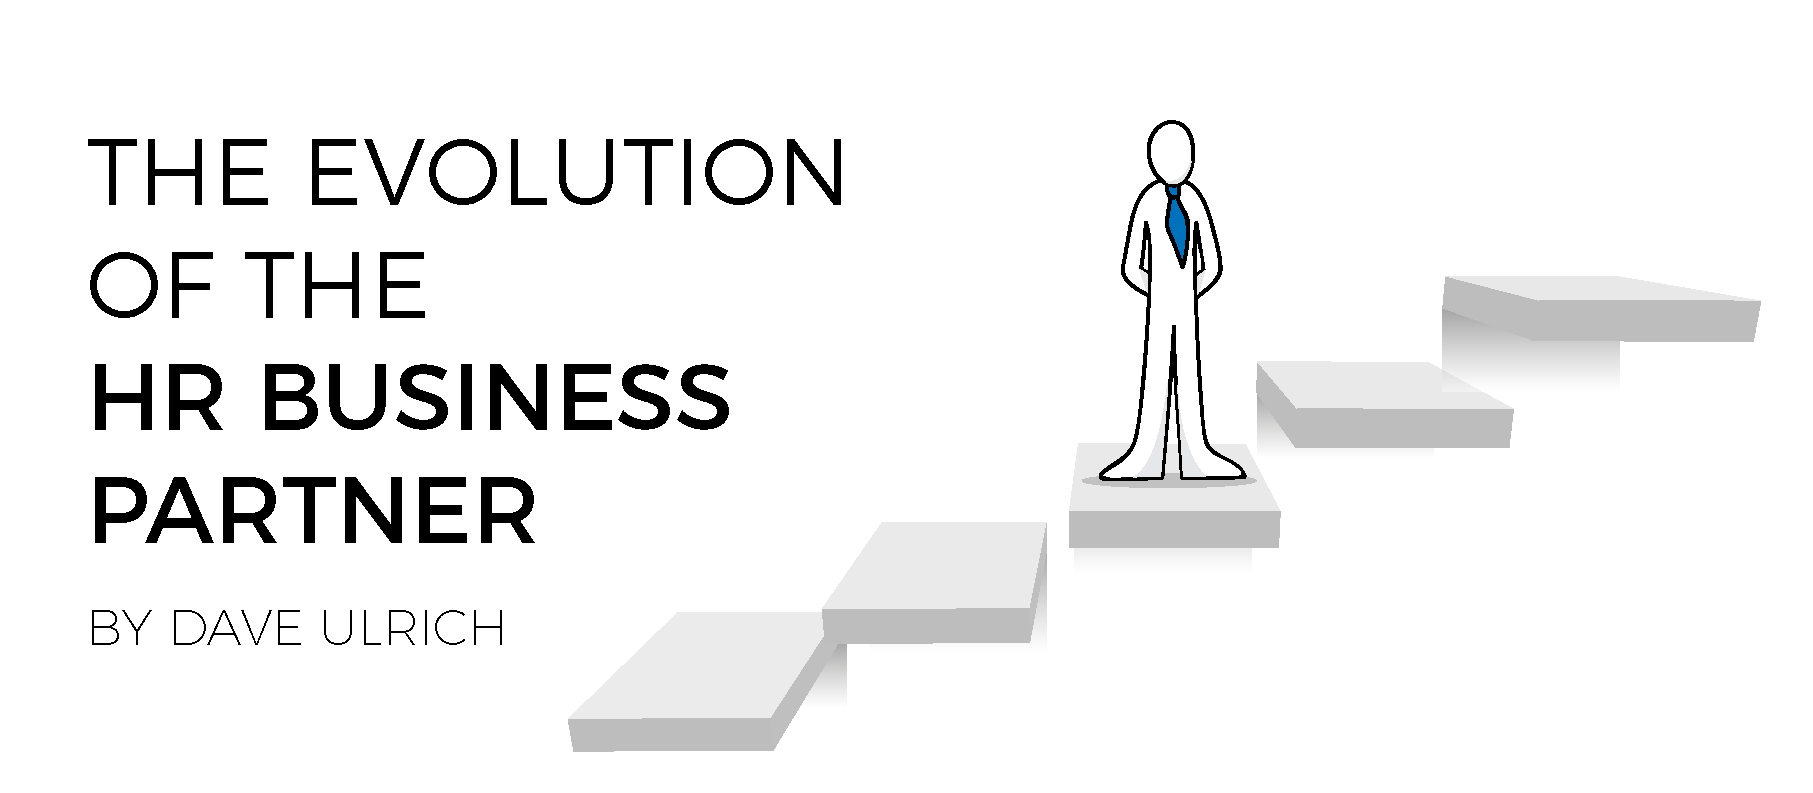 The Evolution Of The Hr Business Partner By Dave Ulrich